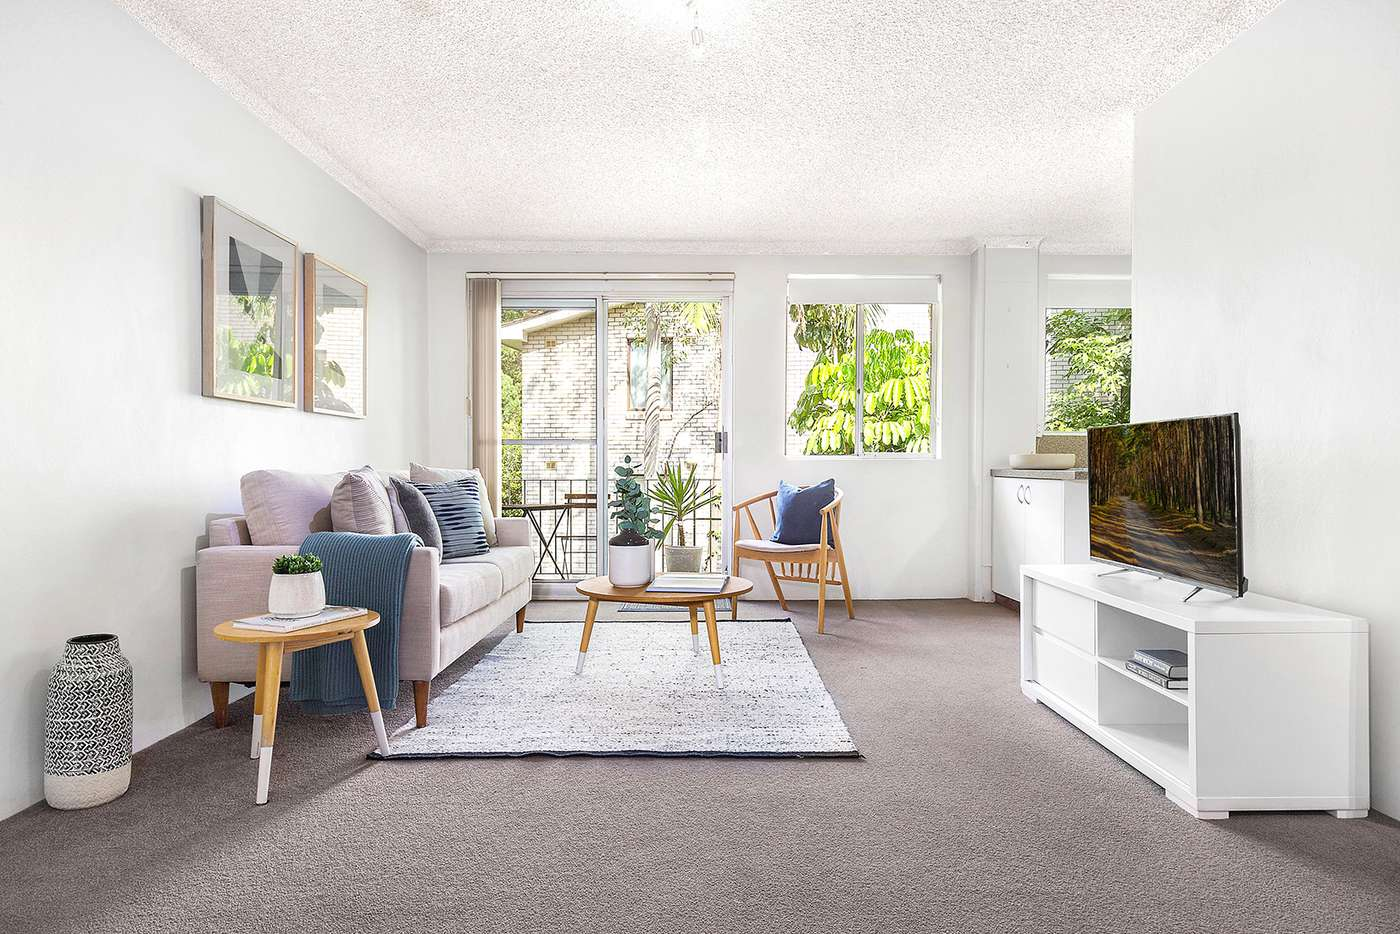 Main view of Homely apartment listing, 5/1304-1308 Pacific Hwy, Turramurra NSW 2074